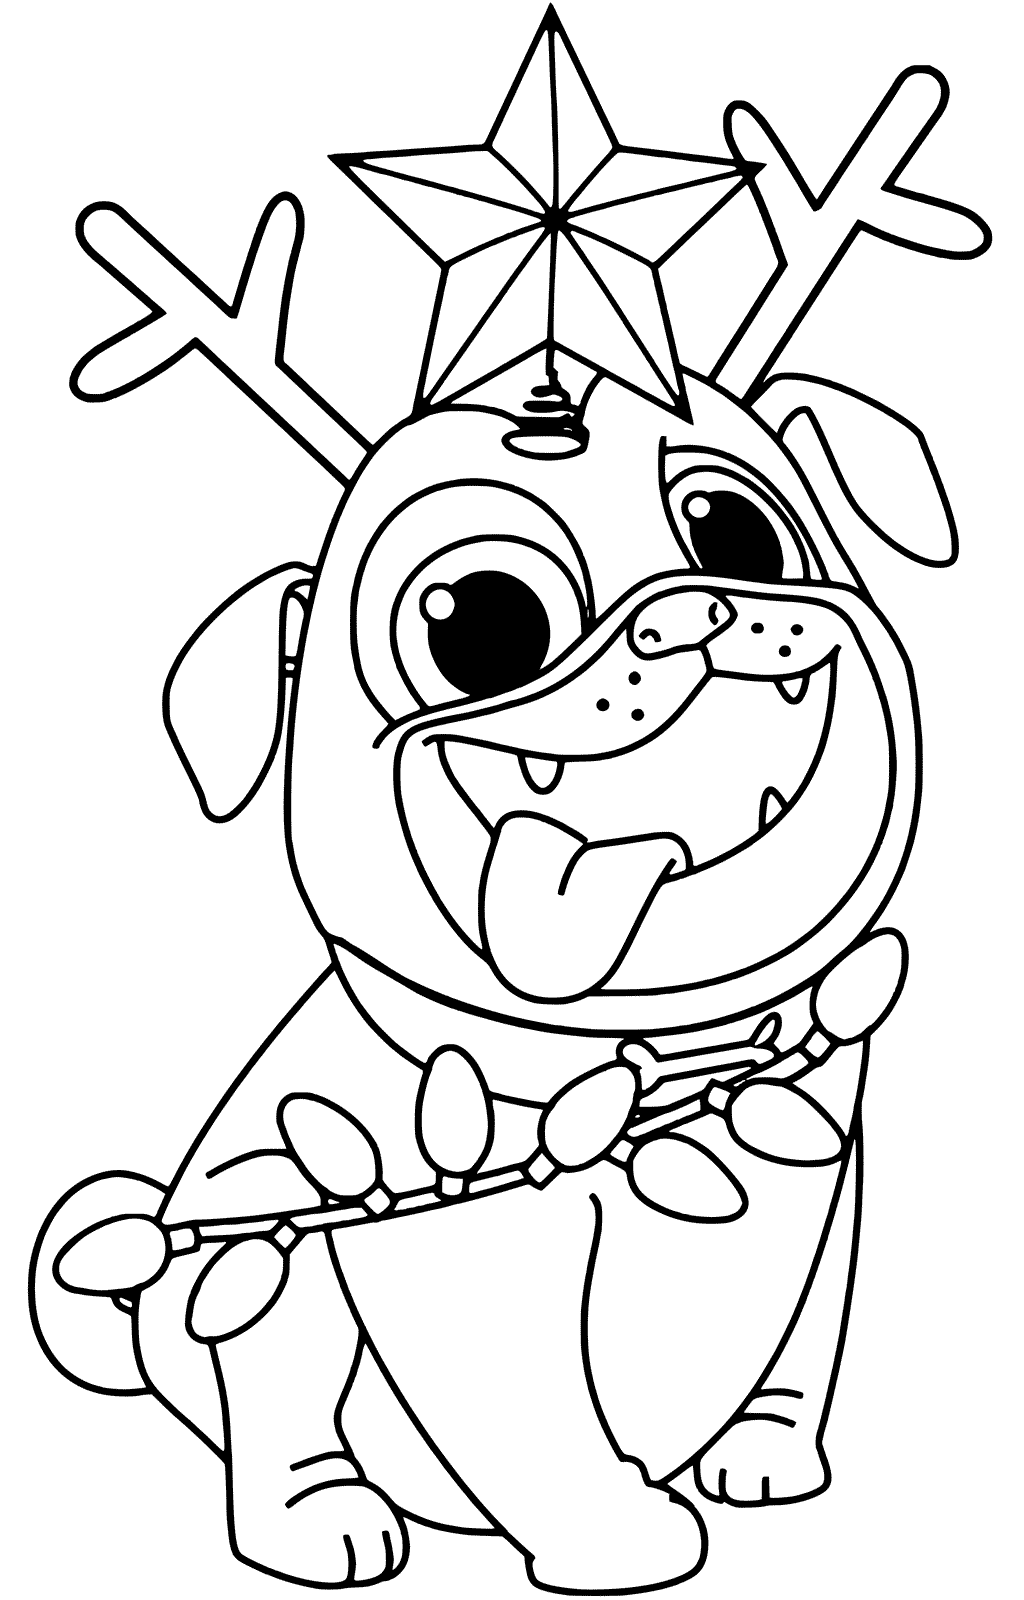 - Puppy Dog Pals Christmas Coloring Pages – Coloring.rocks!